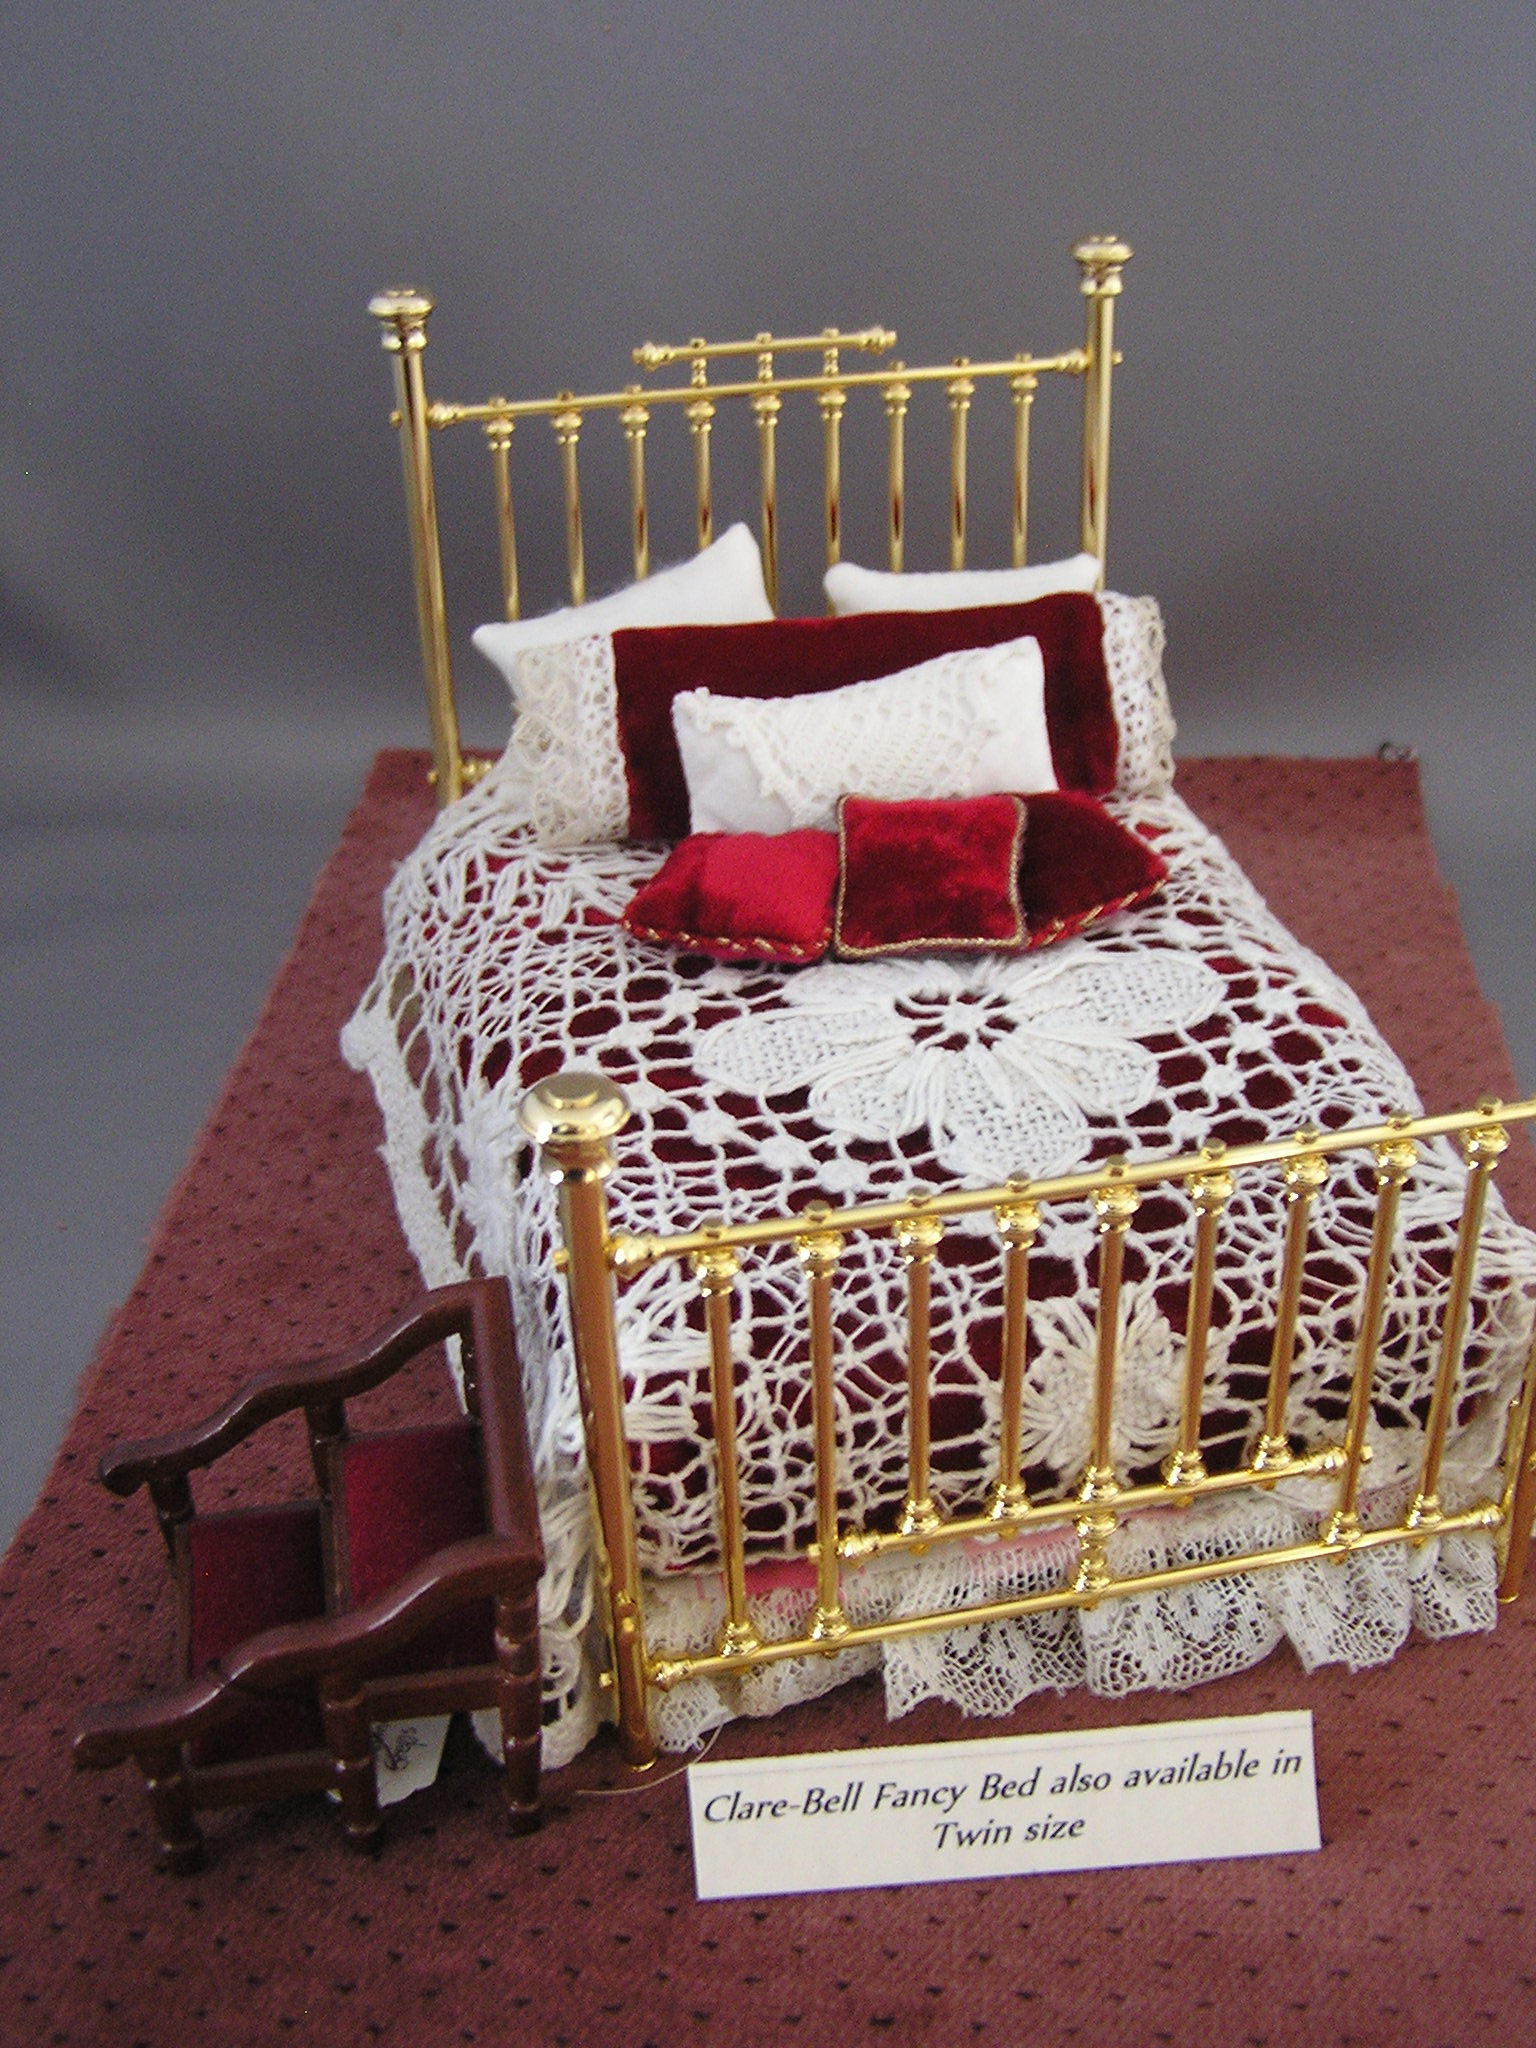 mattress for clare bell brass beds click to enlarge - Brass Beds